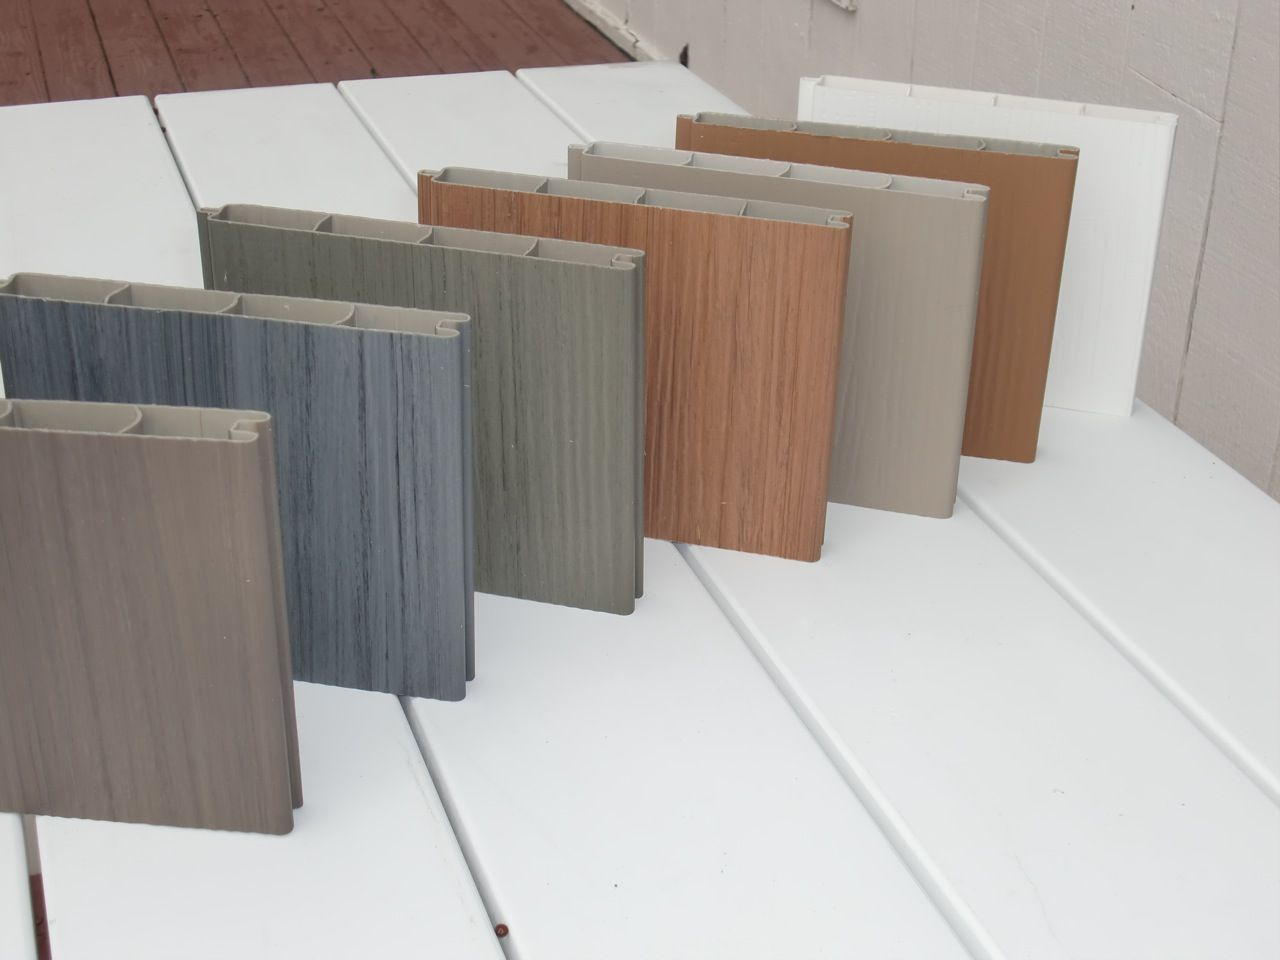 Vinyl Fence Samples With Wood Grain Look Multiple Colors